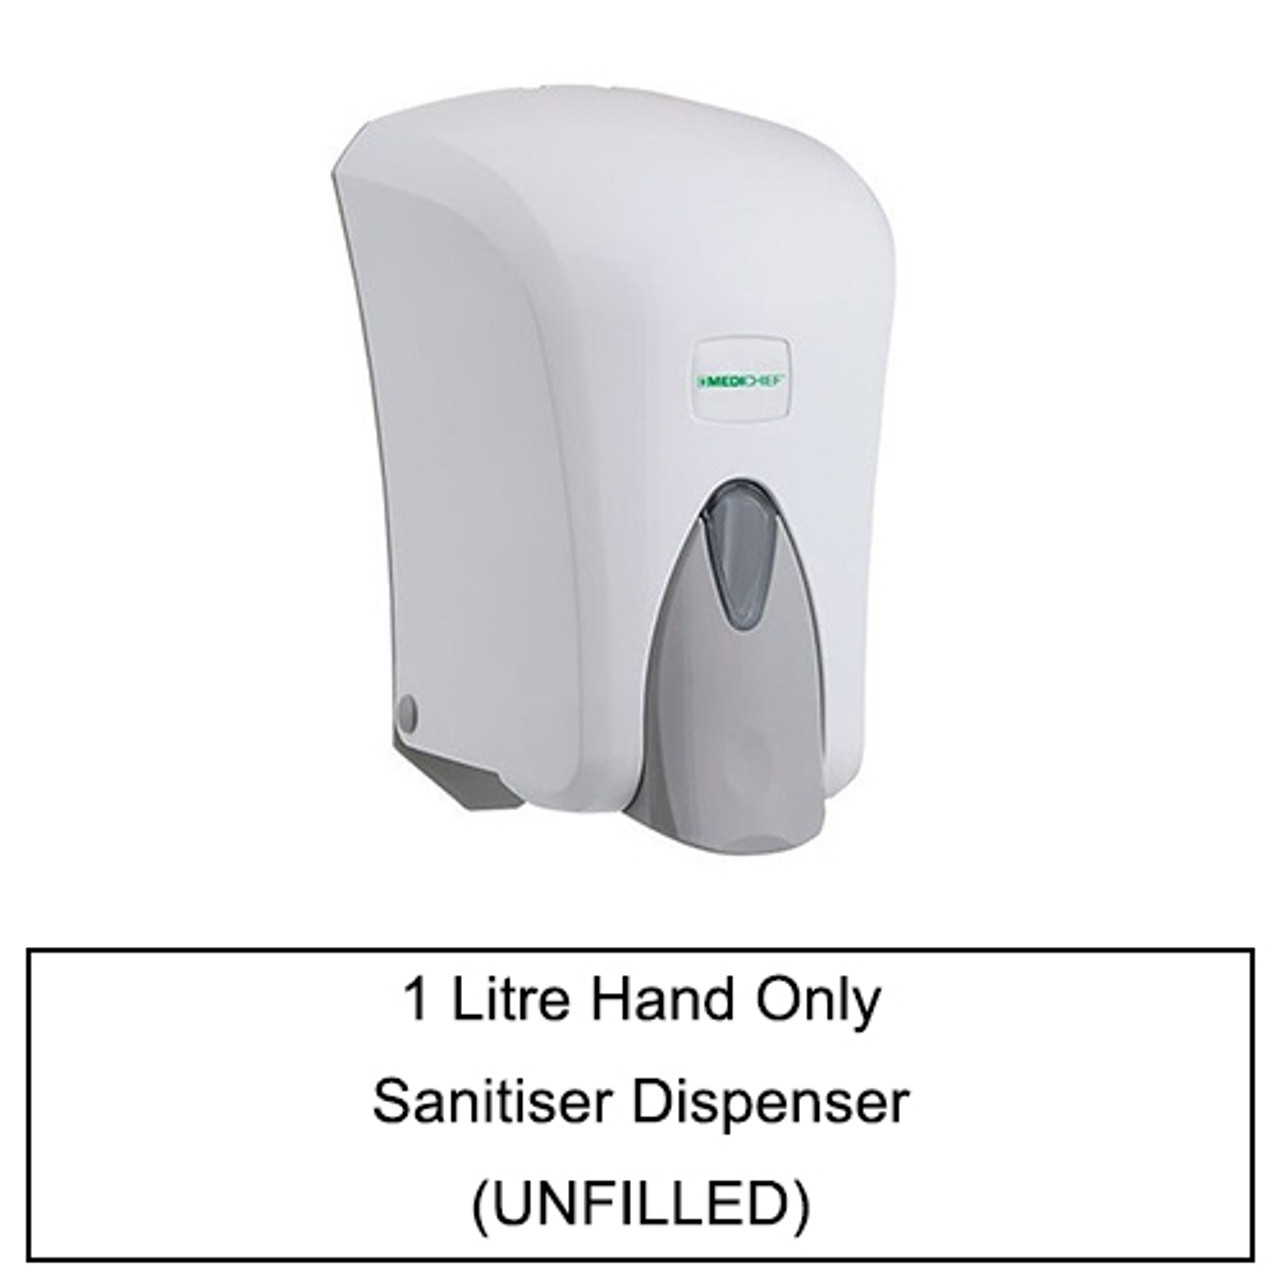 Hand & Elbow, Hand Only Manual Sanitiser Dispensers 300ml - 1 Litre (Unfilled)